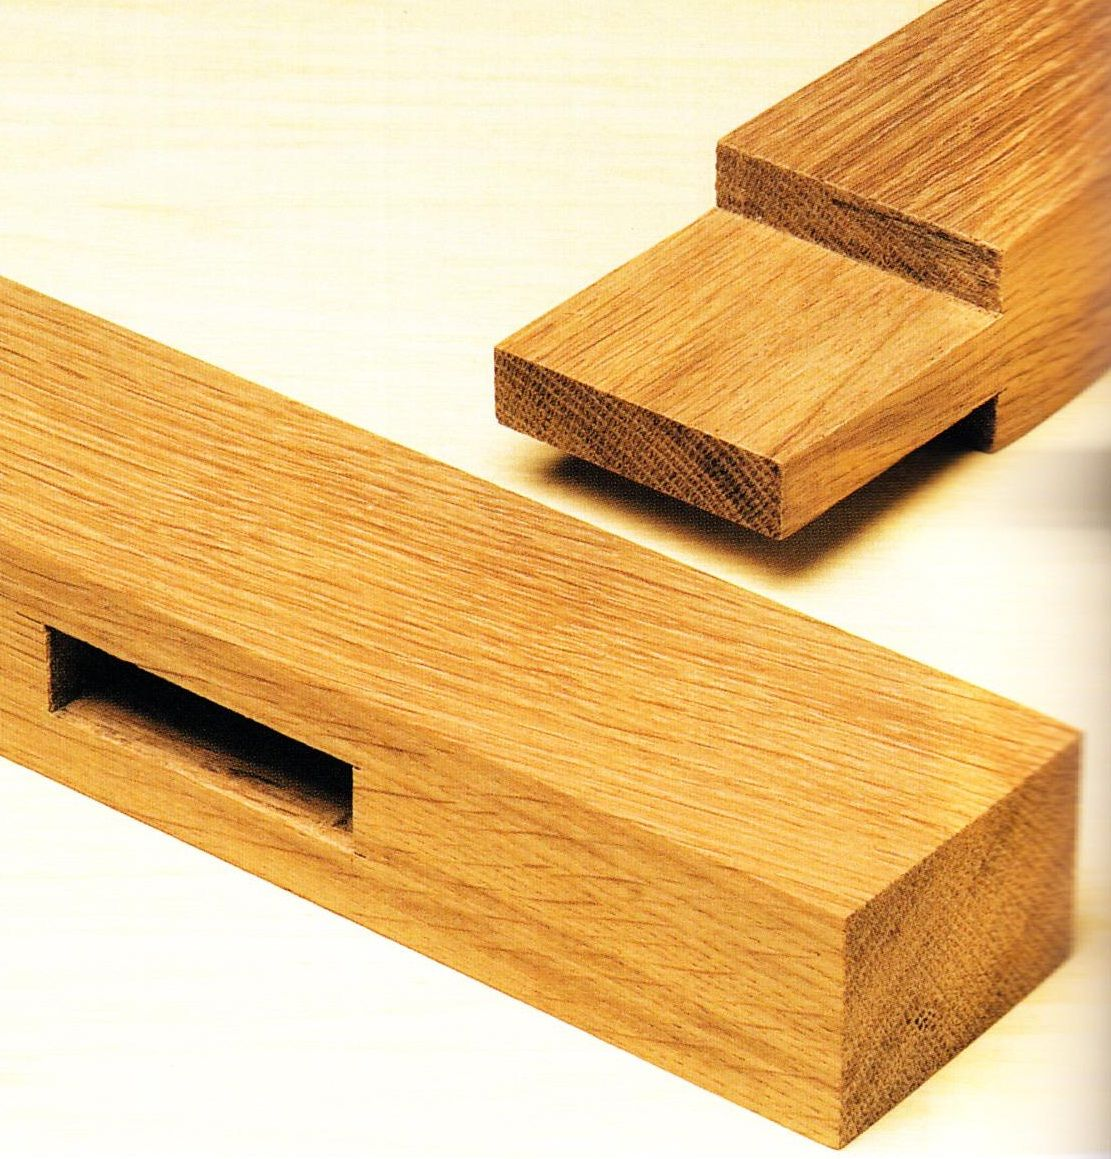 Mortise and tenon joints a strong way to build furniture joints usually ued to connect leg posts or the top slats on chair